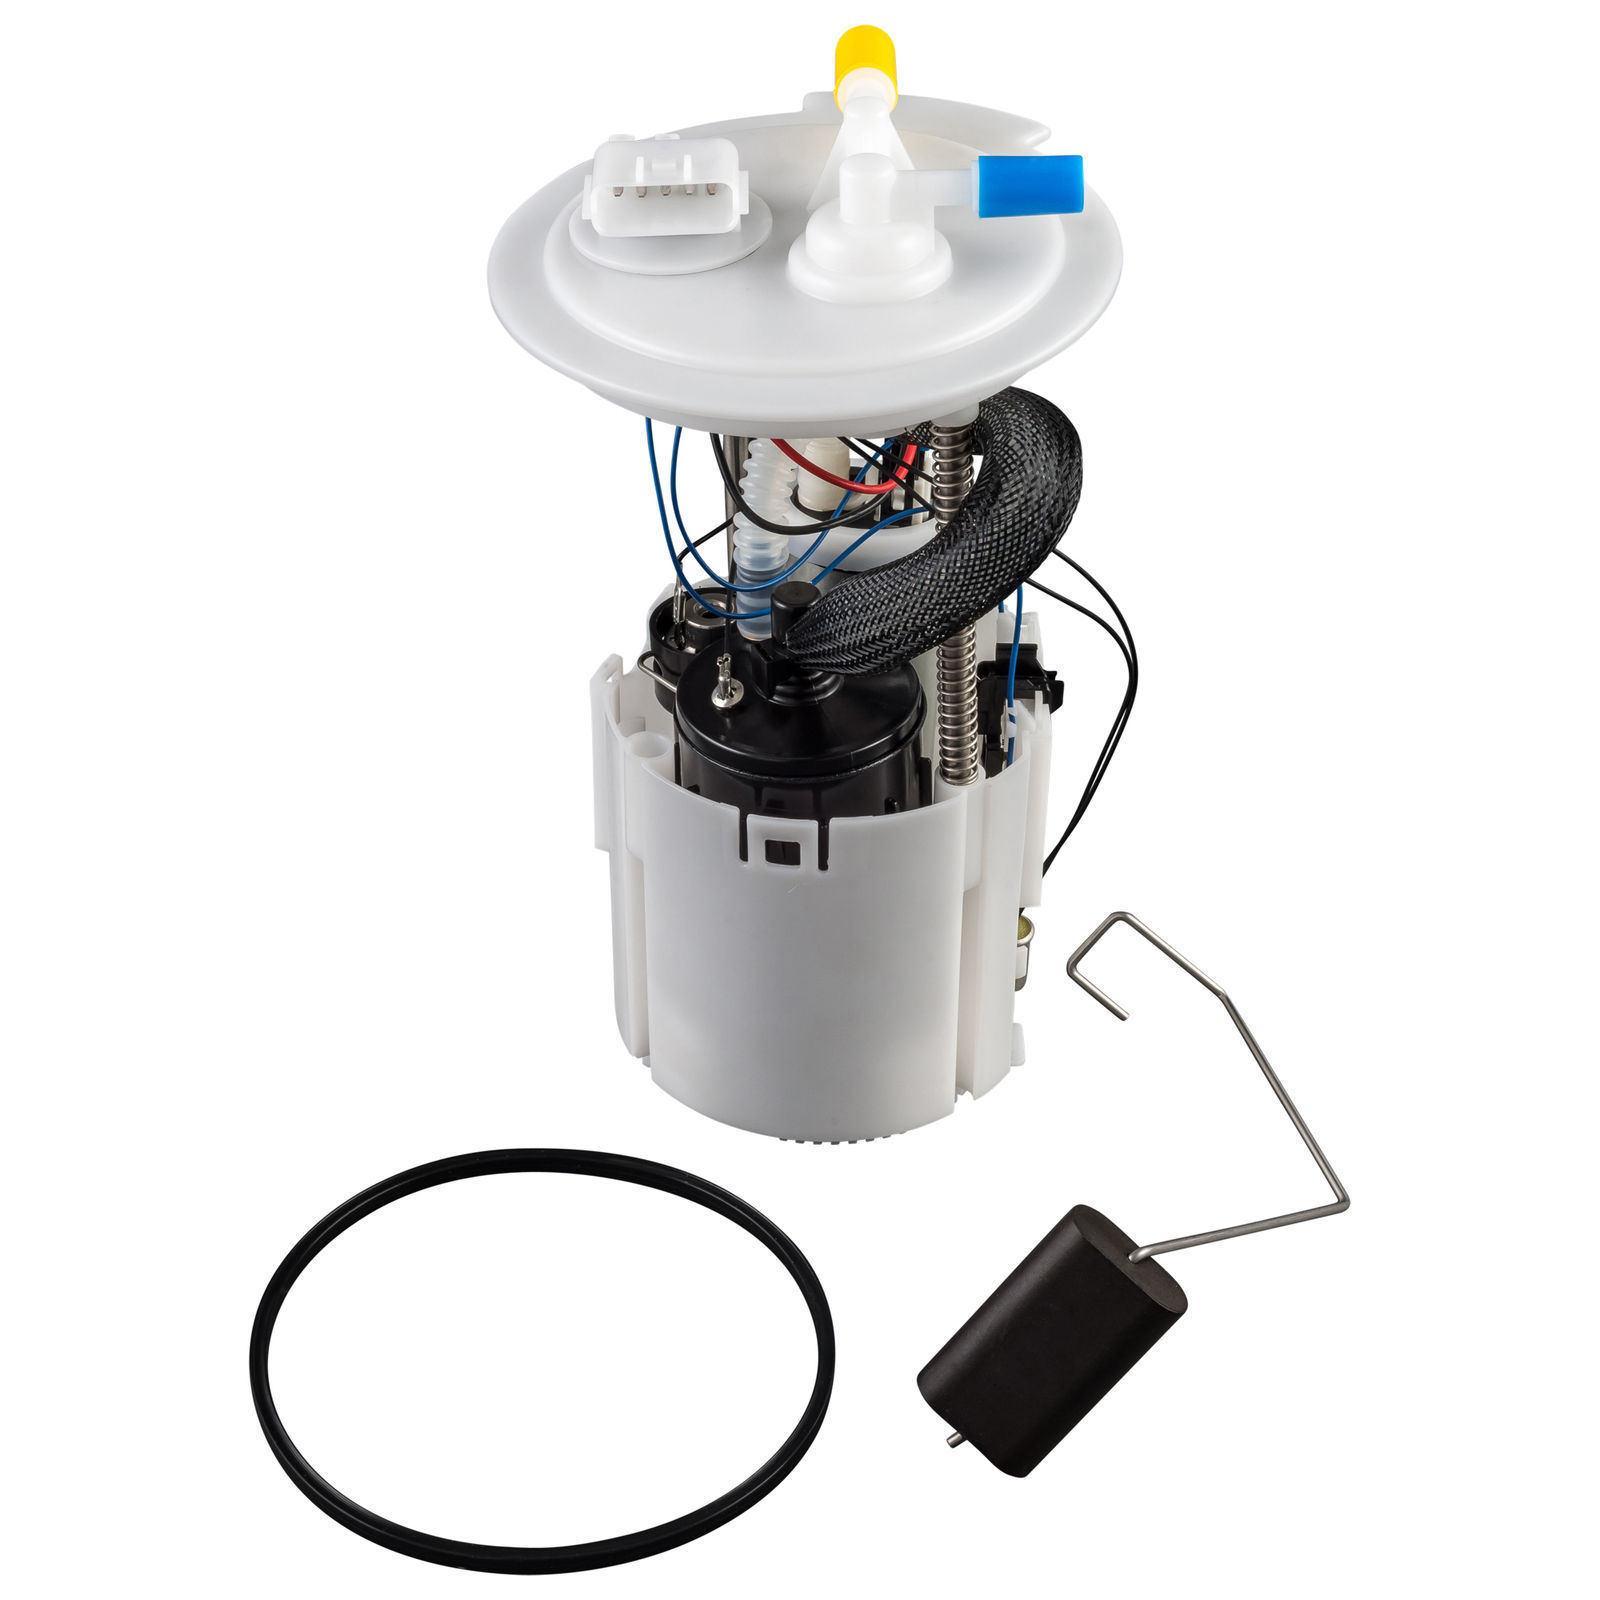 Awesome Fuel Pump 2004 2005 2006 2007 2008 2009 Nissan Altima Maxima System Quest Fits E8545m 2017 2018